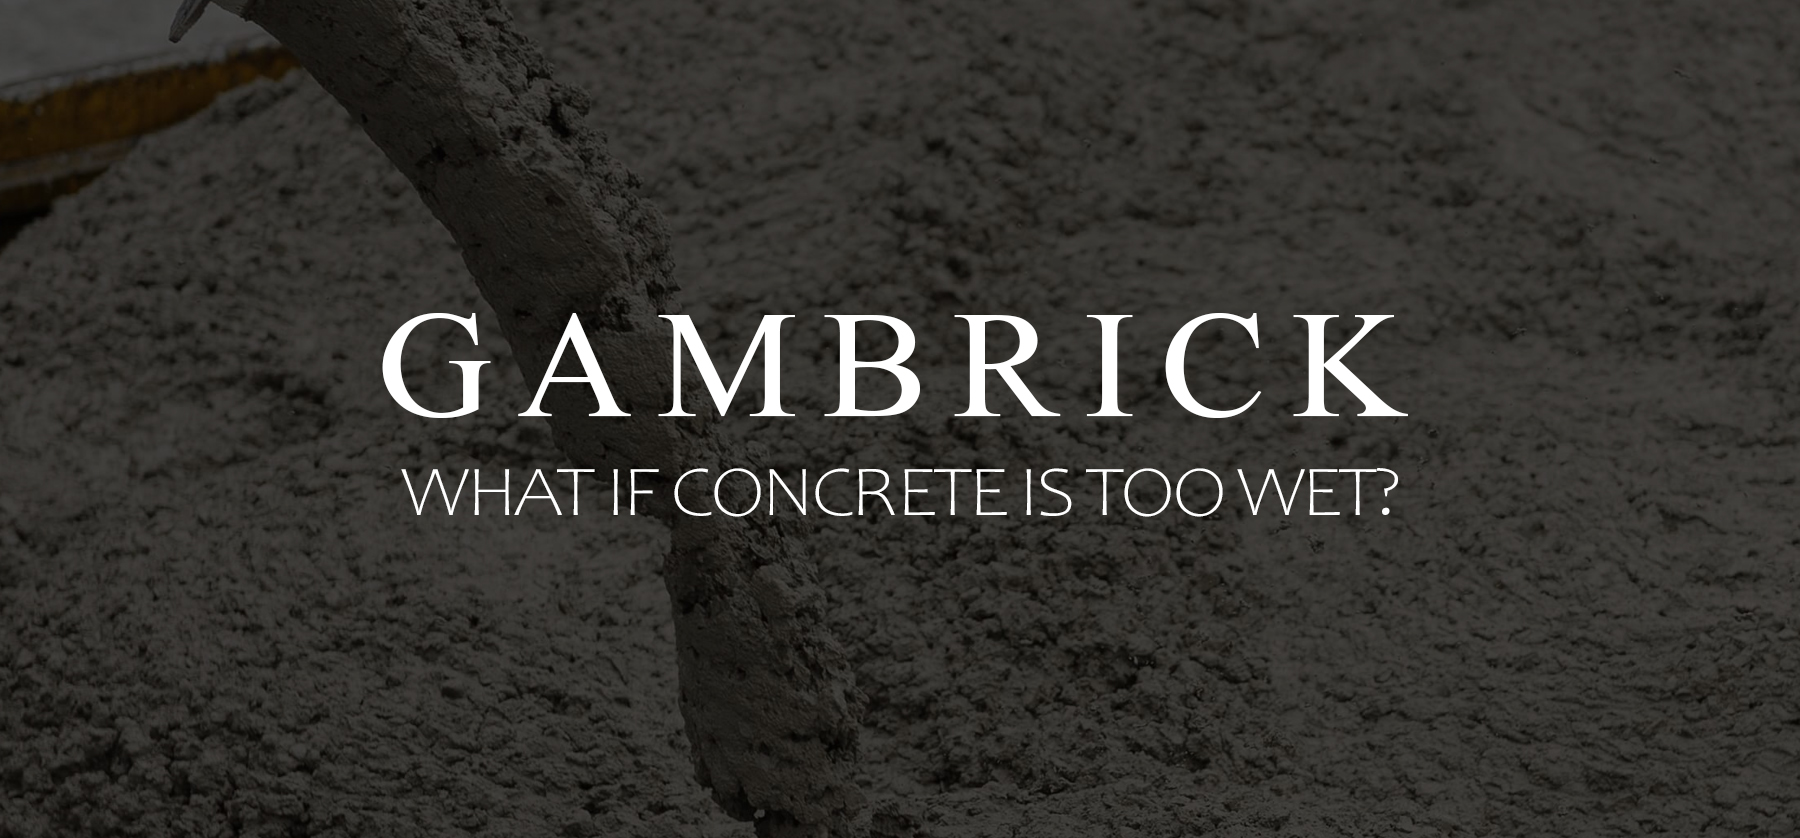 what if concrete is too wet banner pic